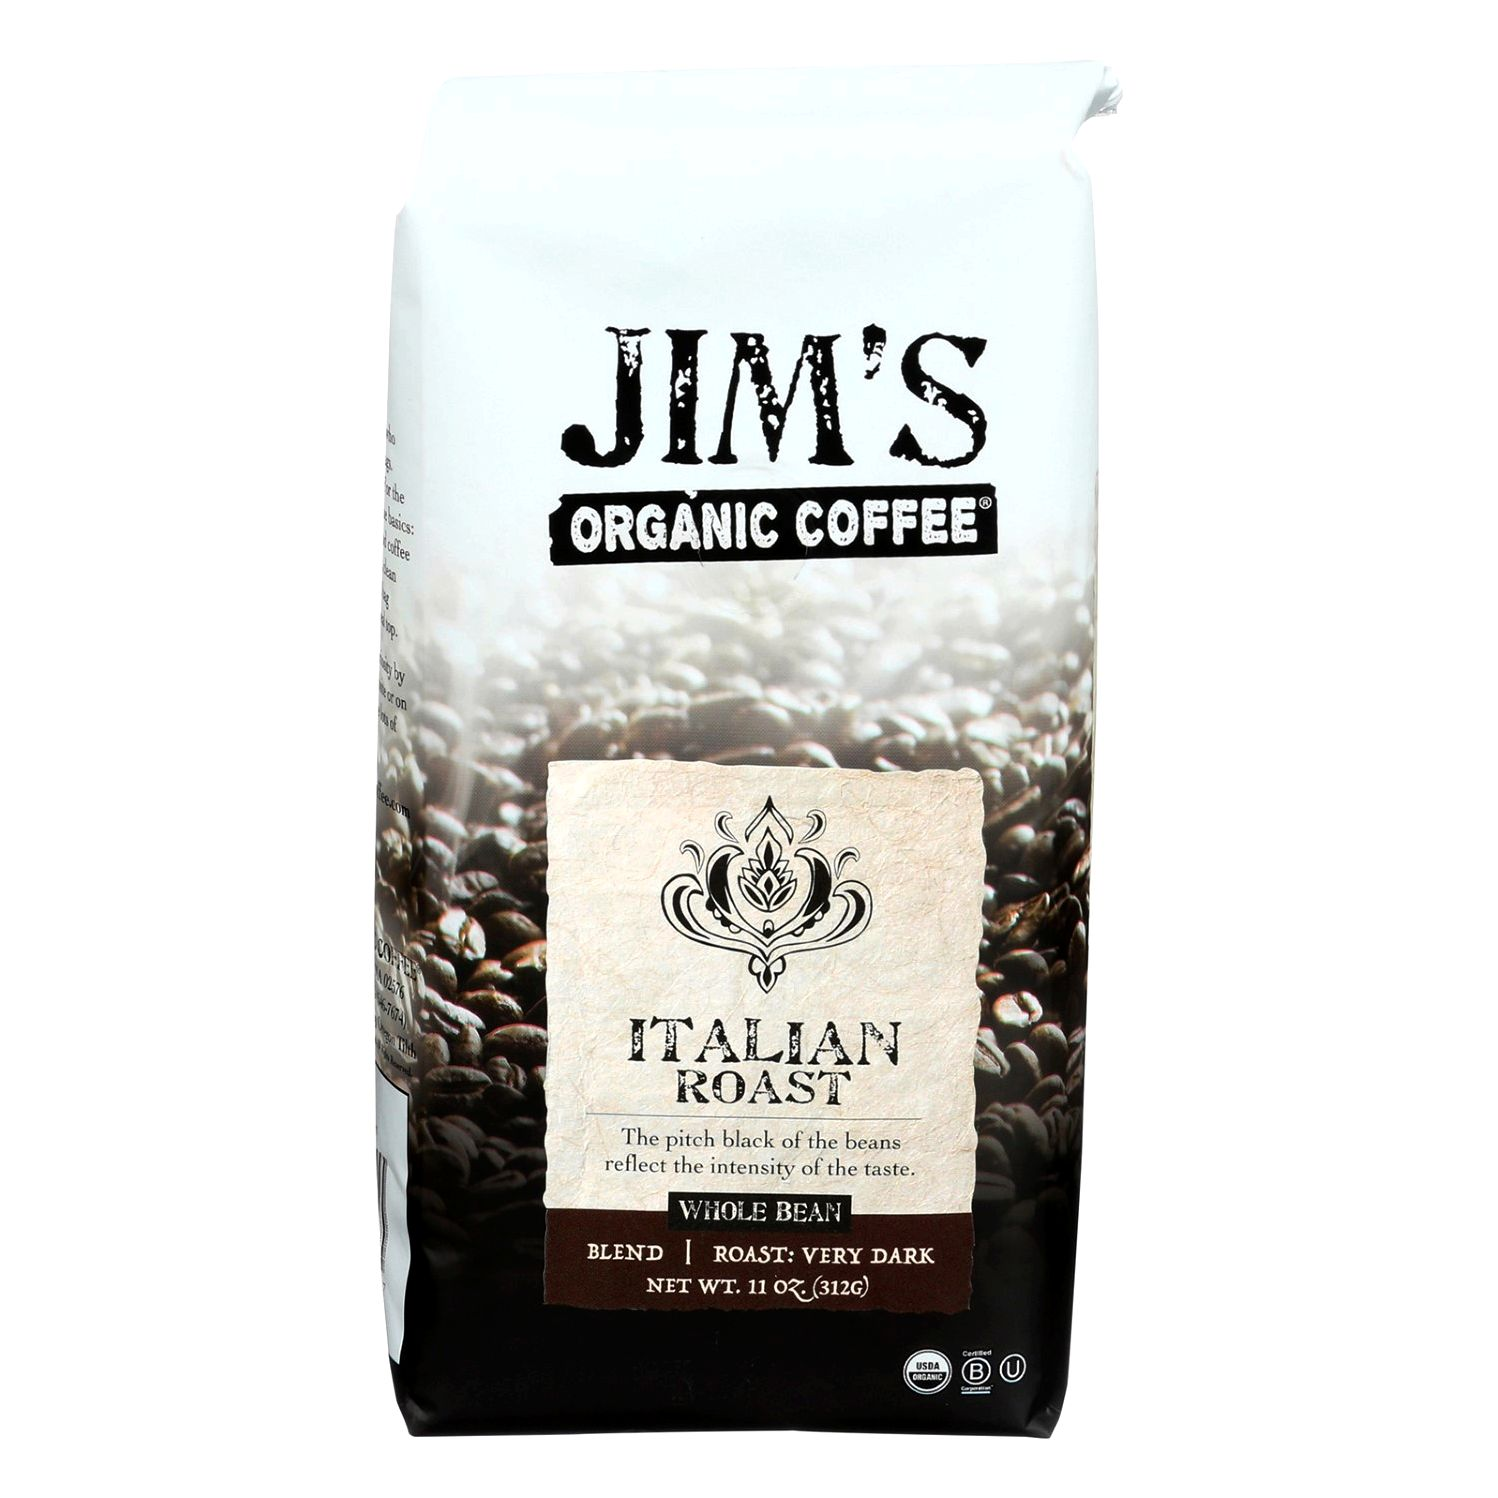 Jim's organic coffee humanitiesOrsciences, or boosts the flow